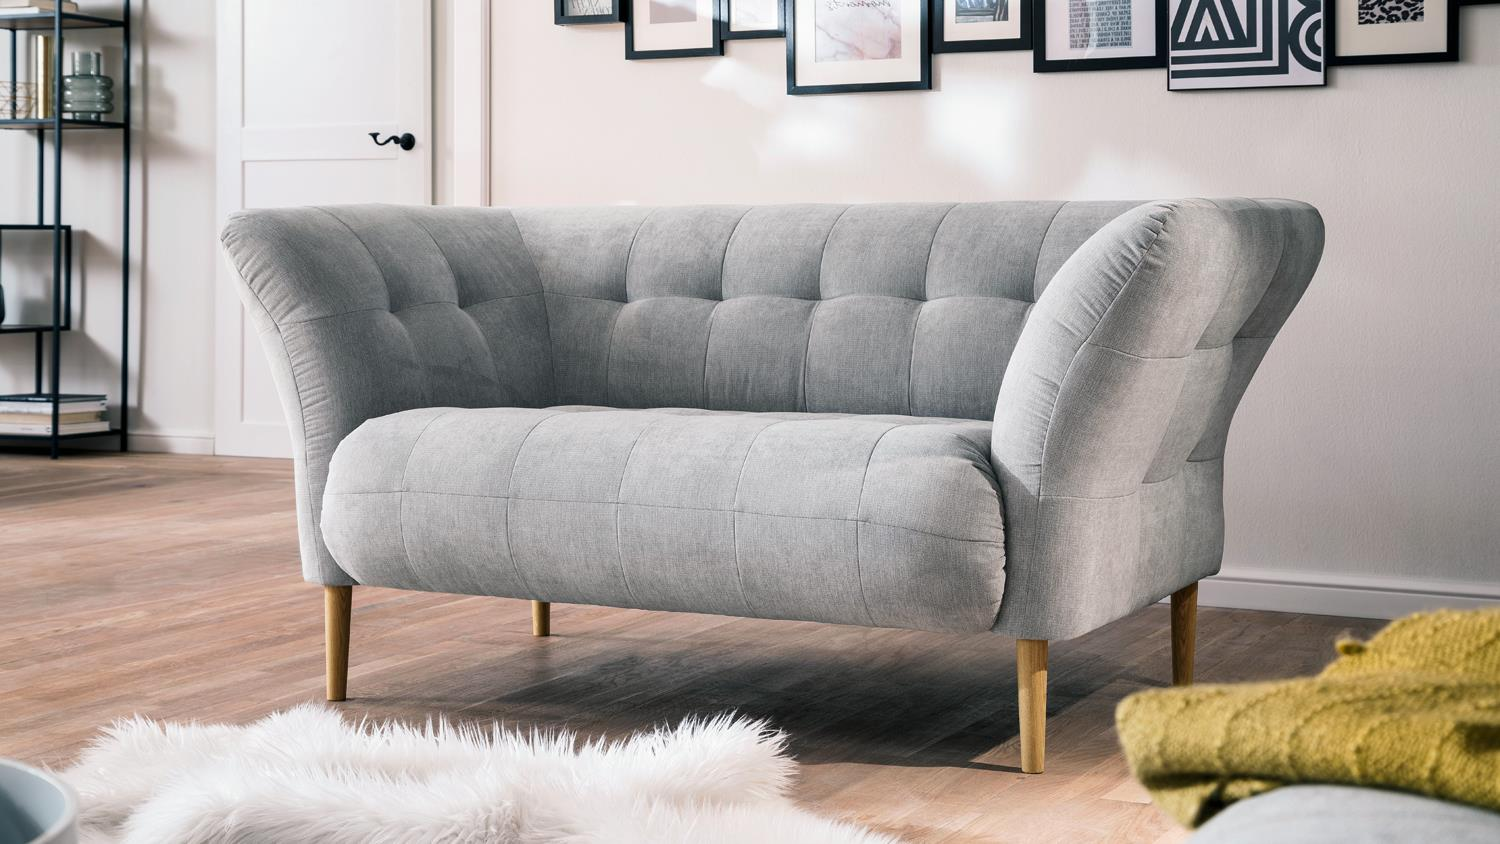 loveseat big apple sofa loungesofa couch stoff silber grau. Black Bedroom Furniture Sets. Home Design Ideas